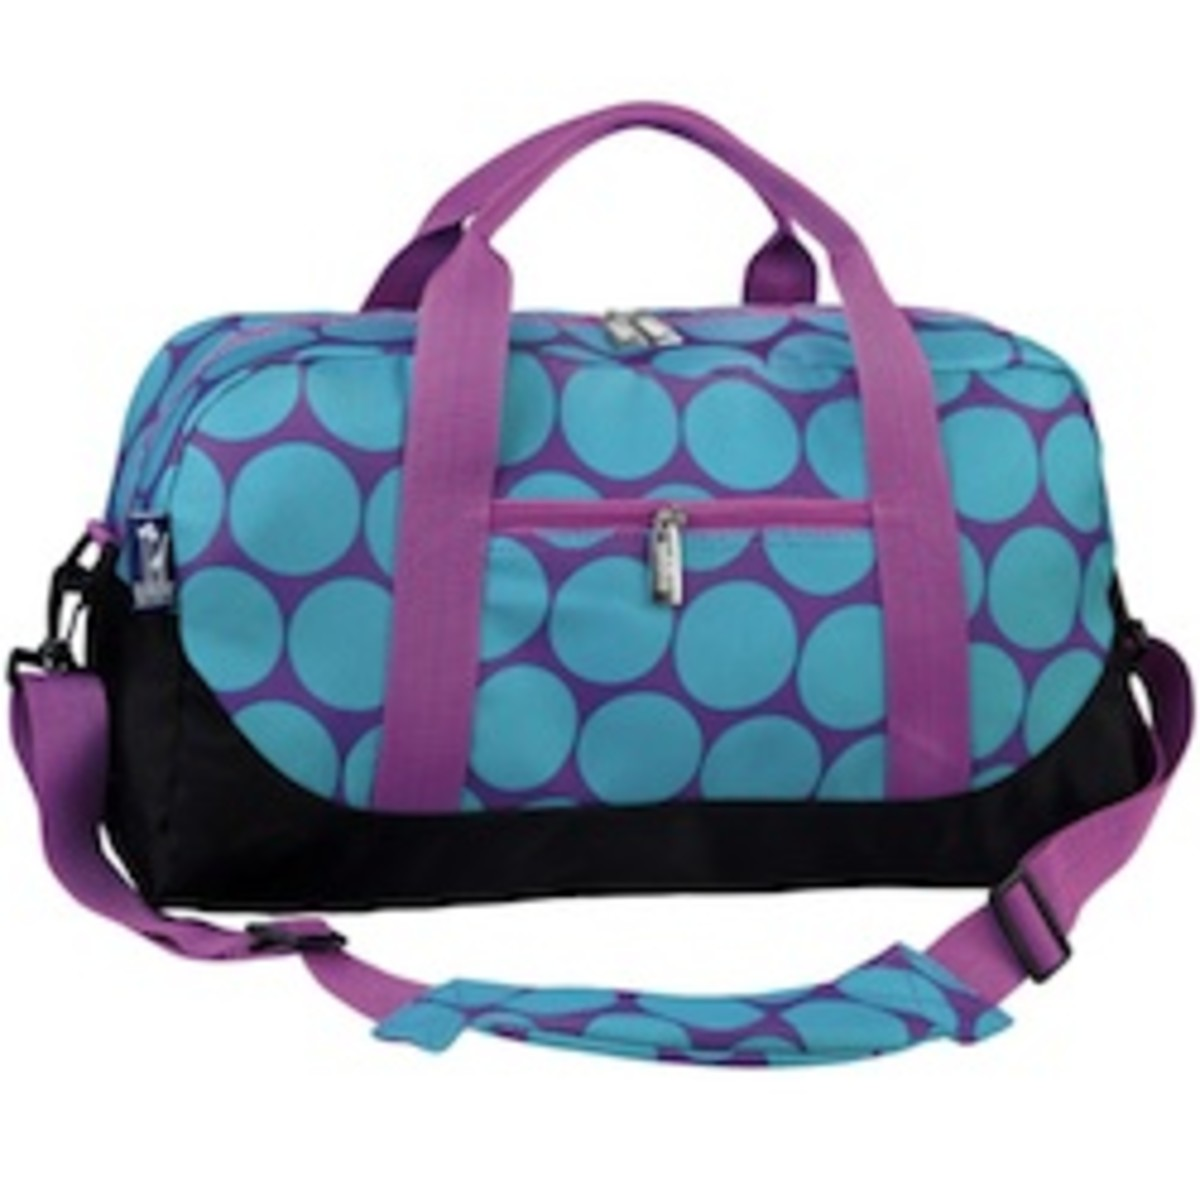 She will Love a Sleeping Bag and Overnight Bag that Match!!